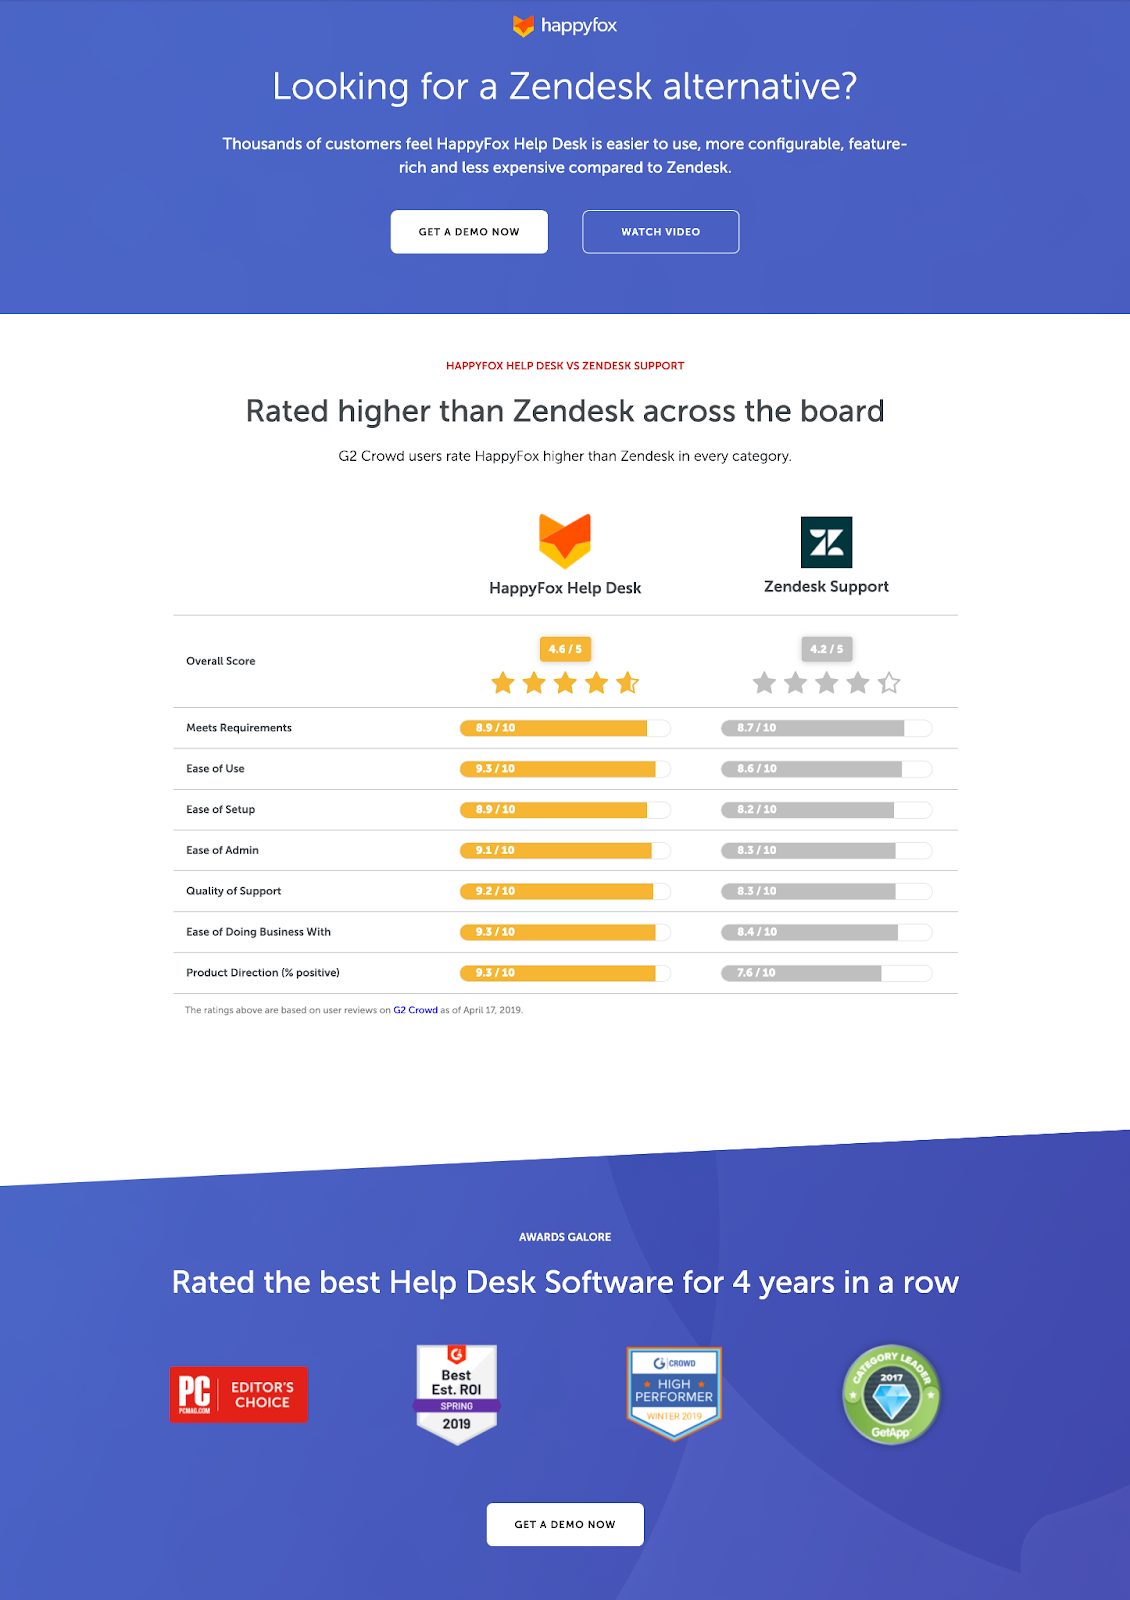 B2B landing pages - happyfox's competitor landing page